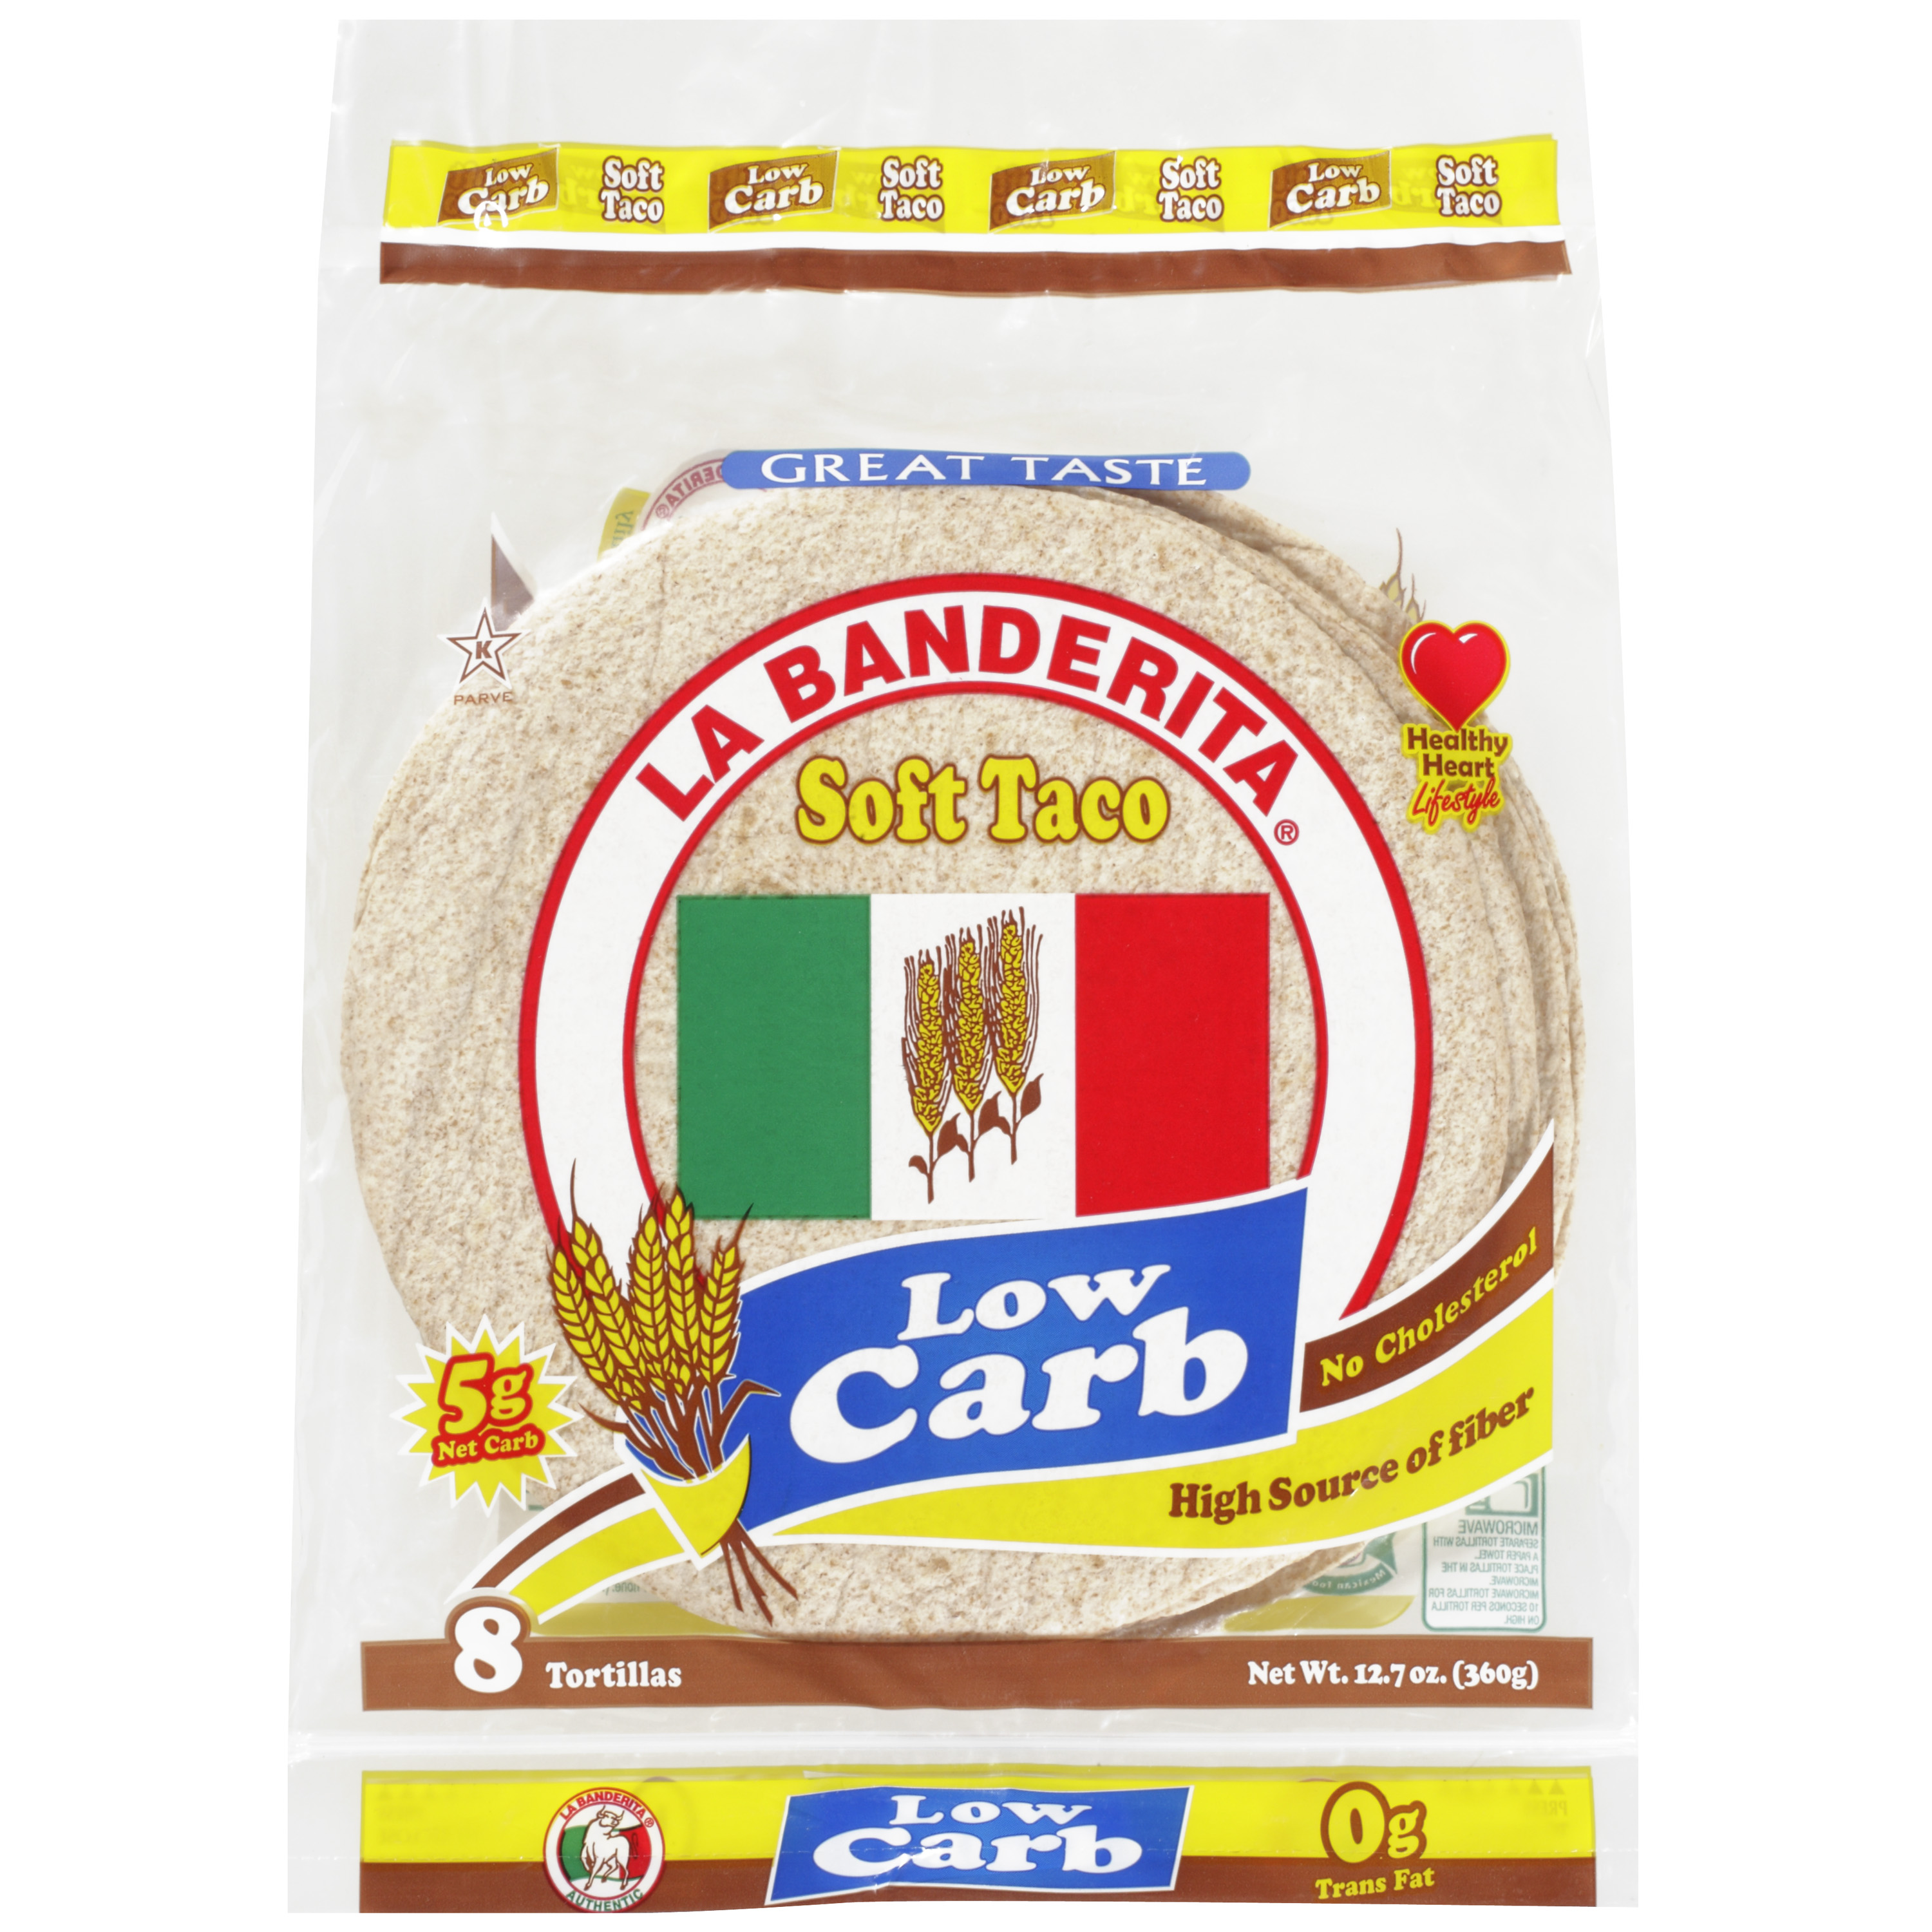 La Banderita 8 Inch Low Carb Soft Taco Wheat Tortillas, 8ct